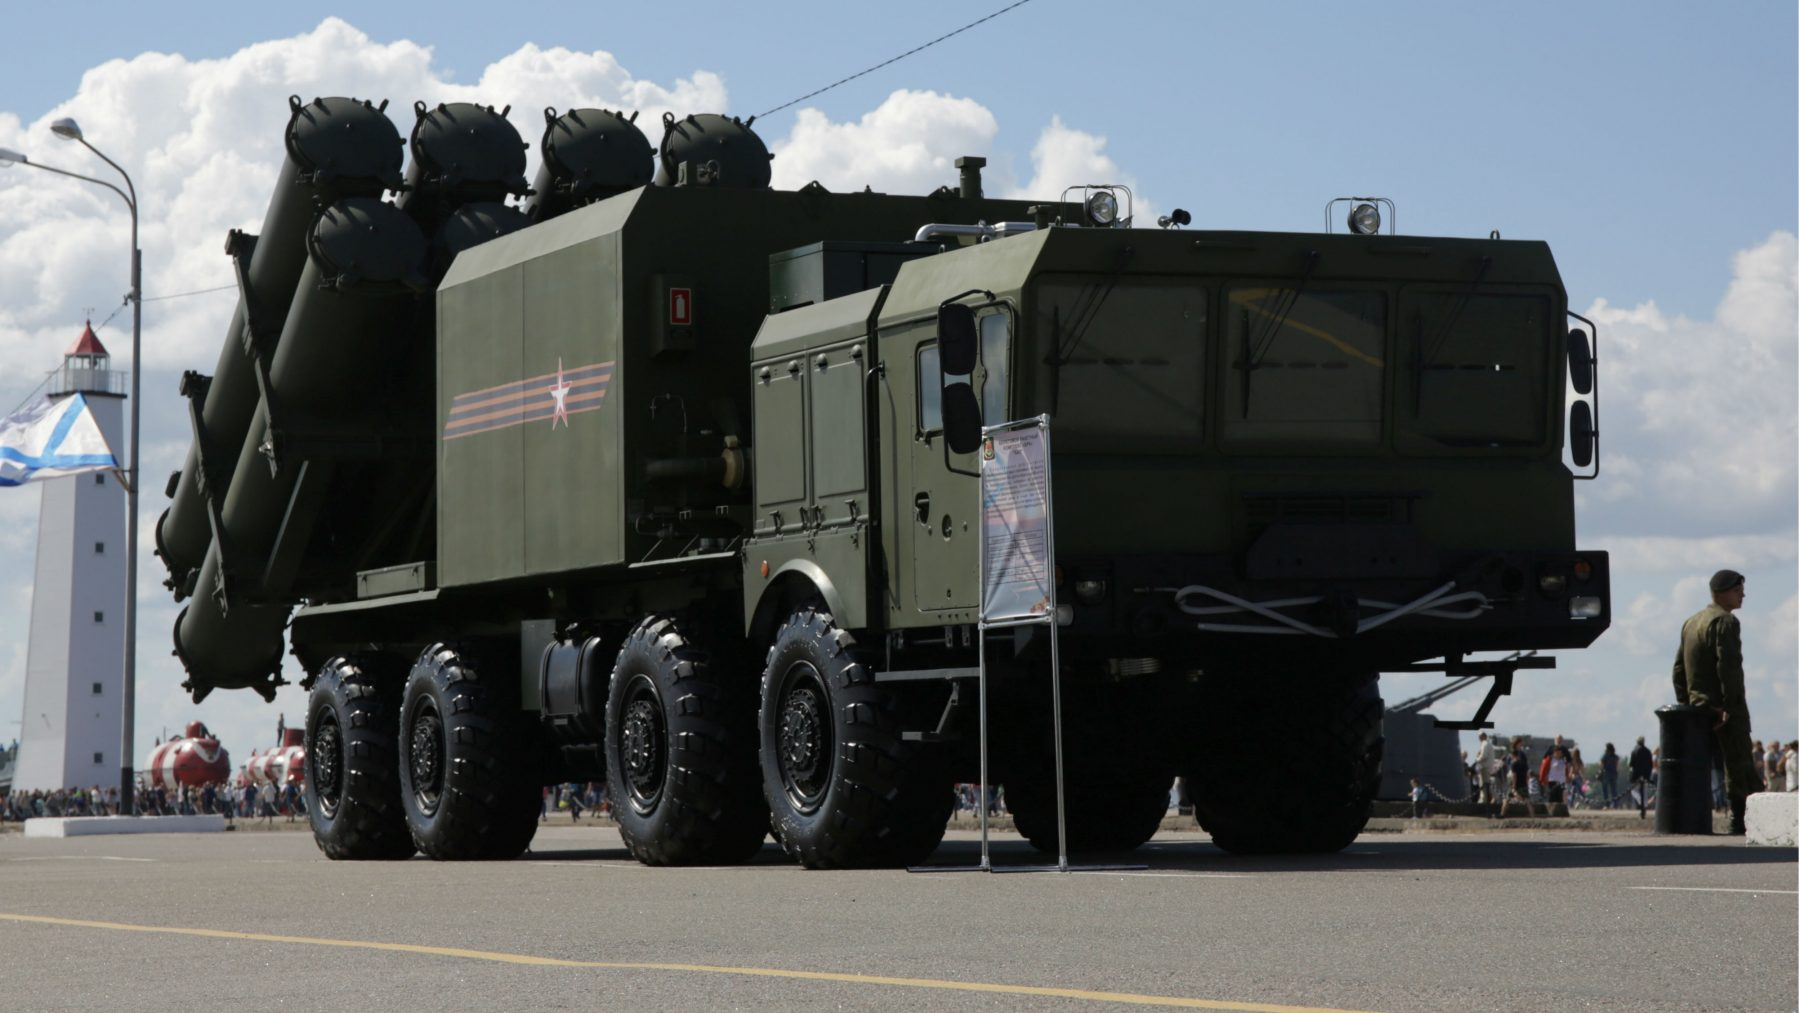 Russia deploys missile system in range of Norway's Arctic radars